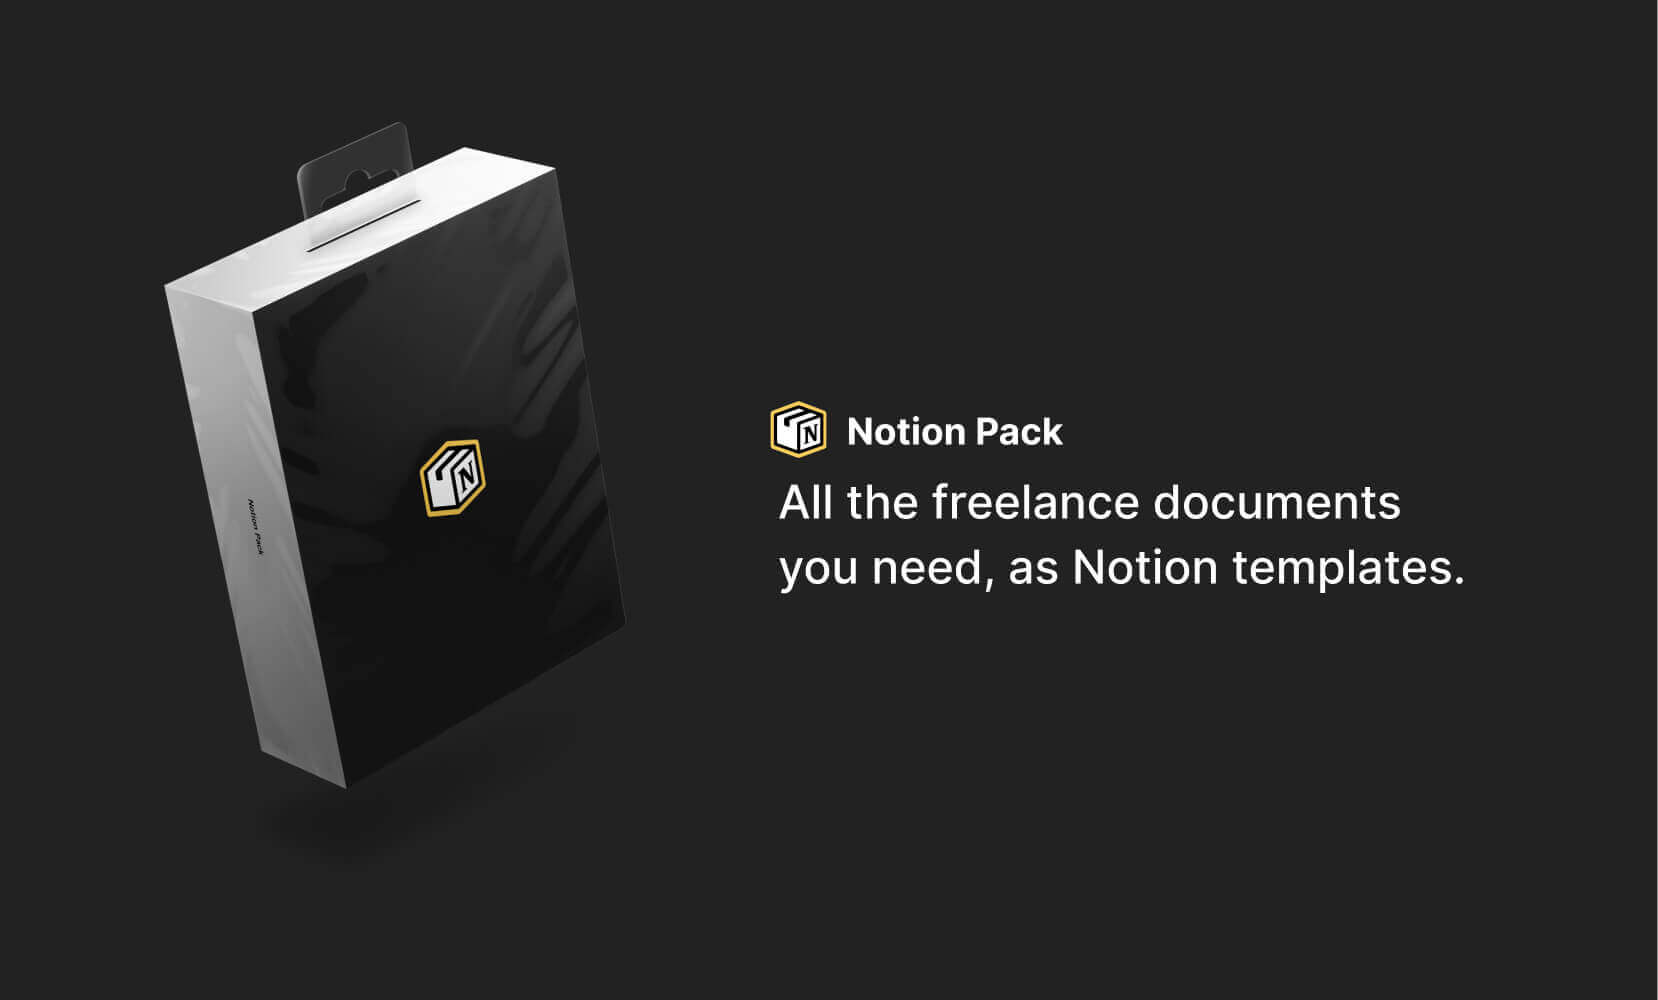 Notion Pack - Freelance templates